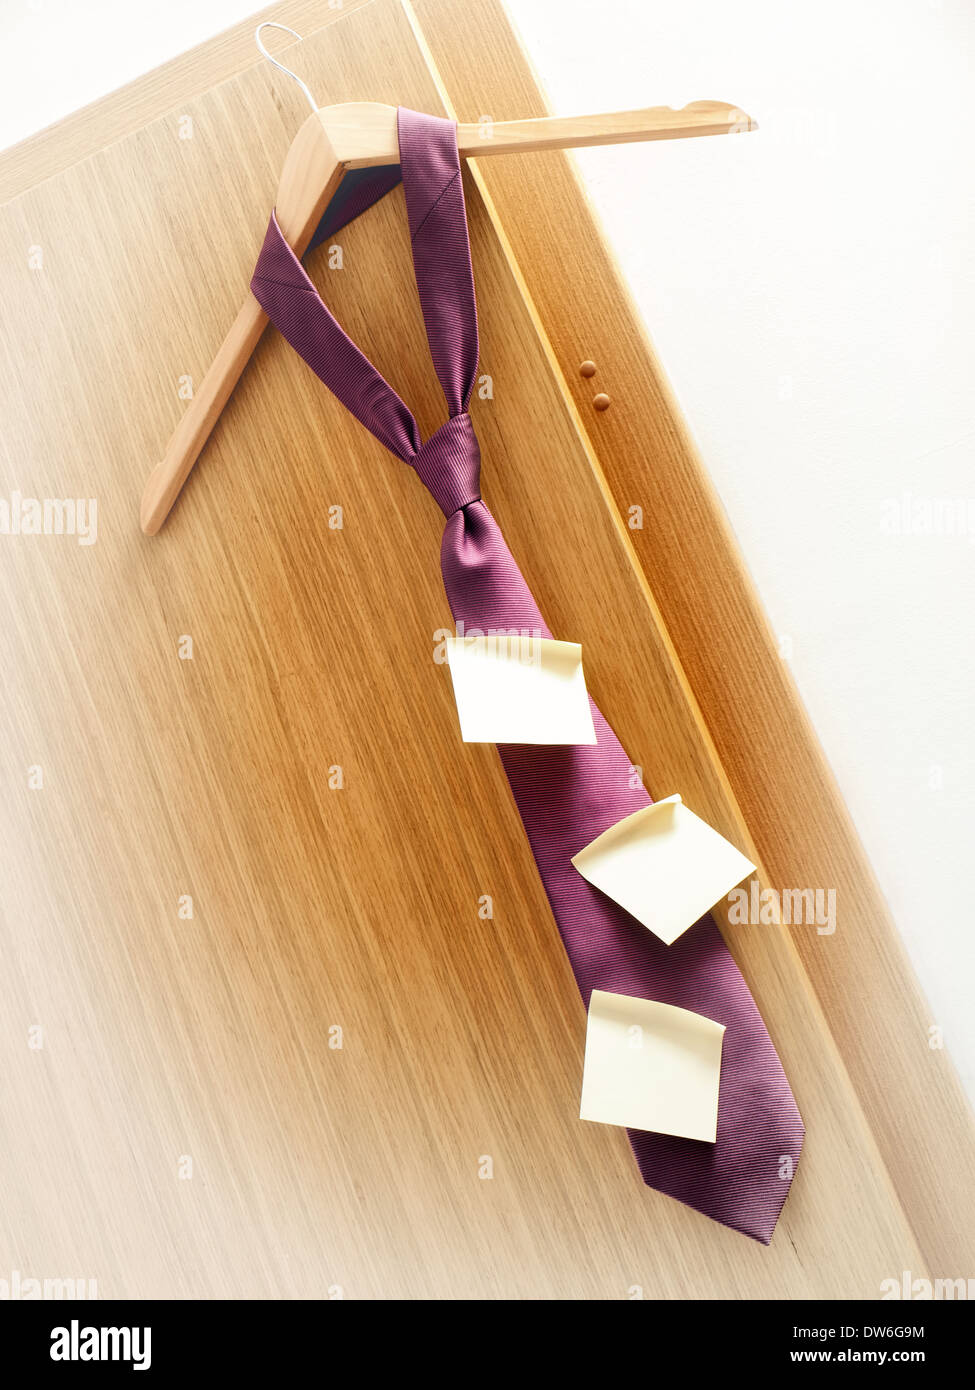 Few sticky notes on a tie as a symbol of planning in business. - Stock Image